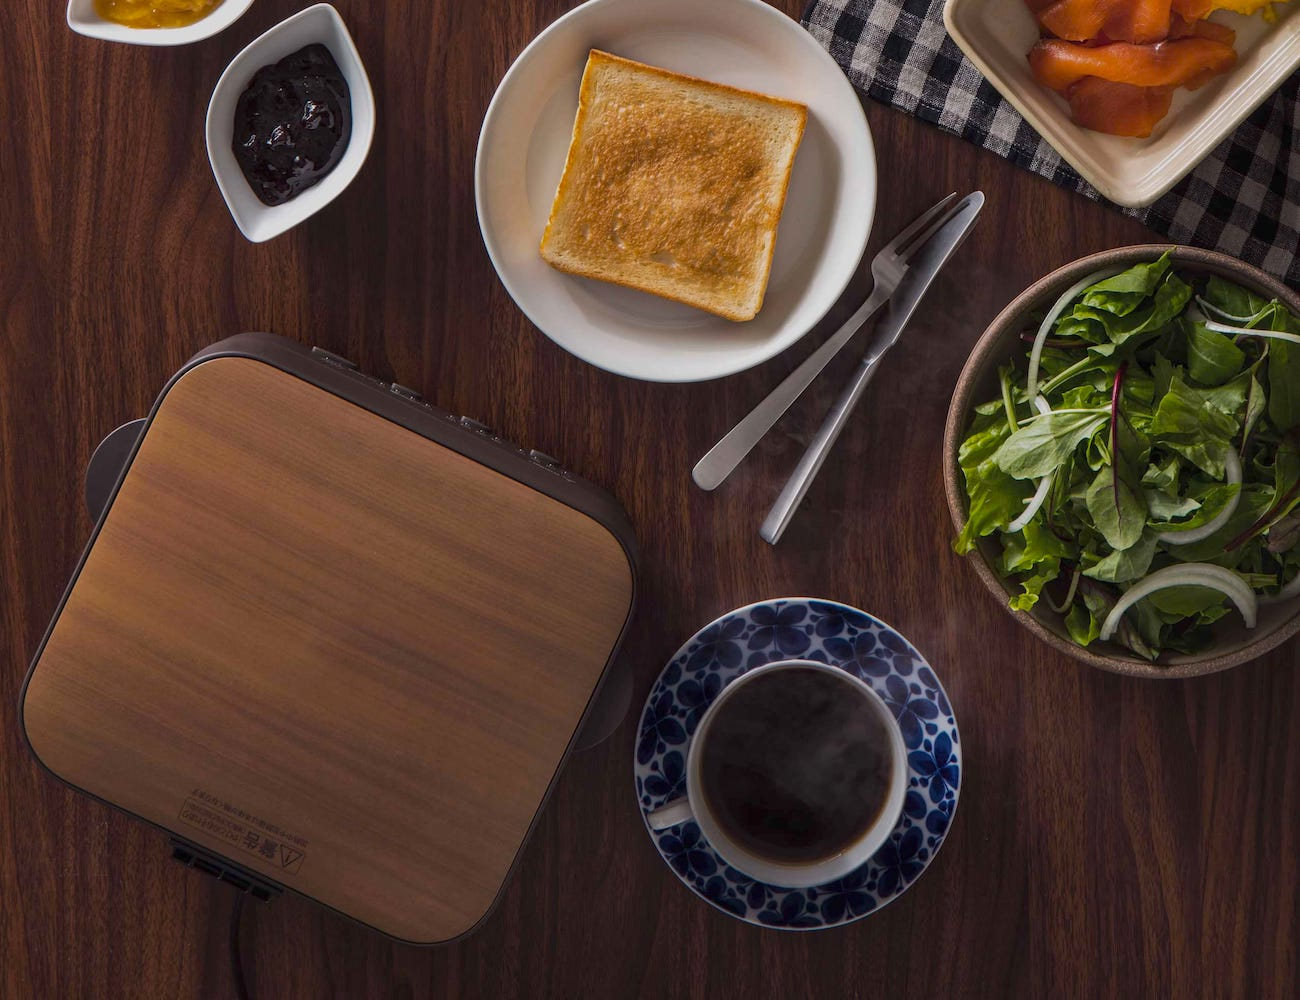 Mitsubishi TO-ST1-T Electric Bread Toaster Oven cooks the fluffiest piece of toast